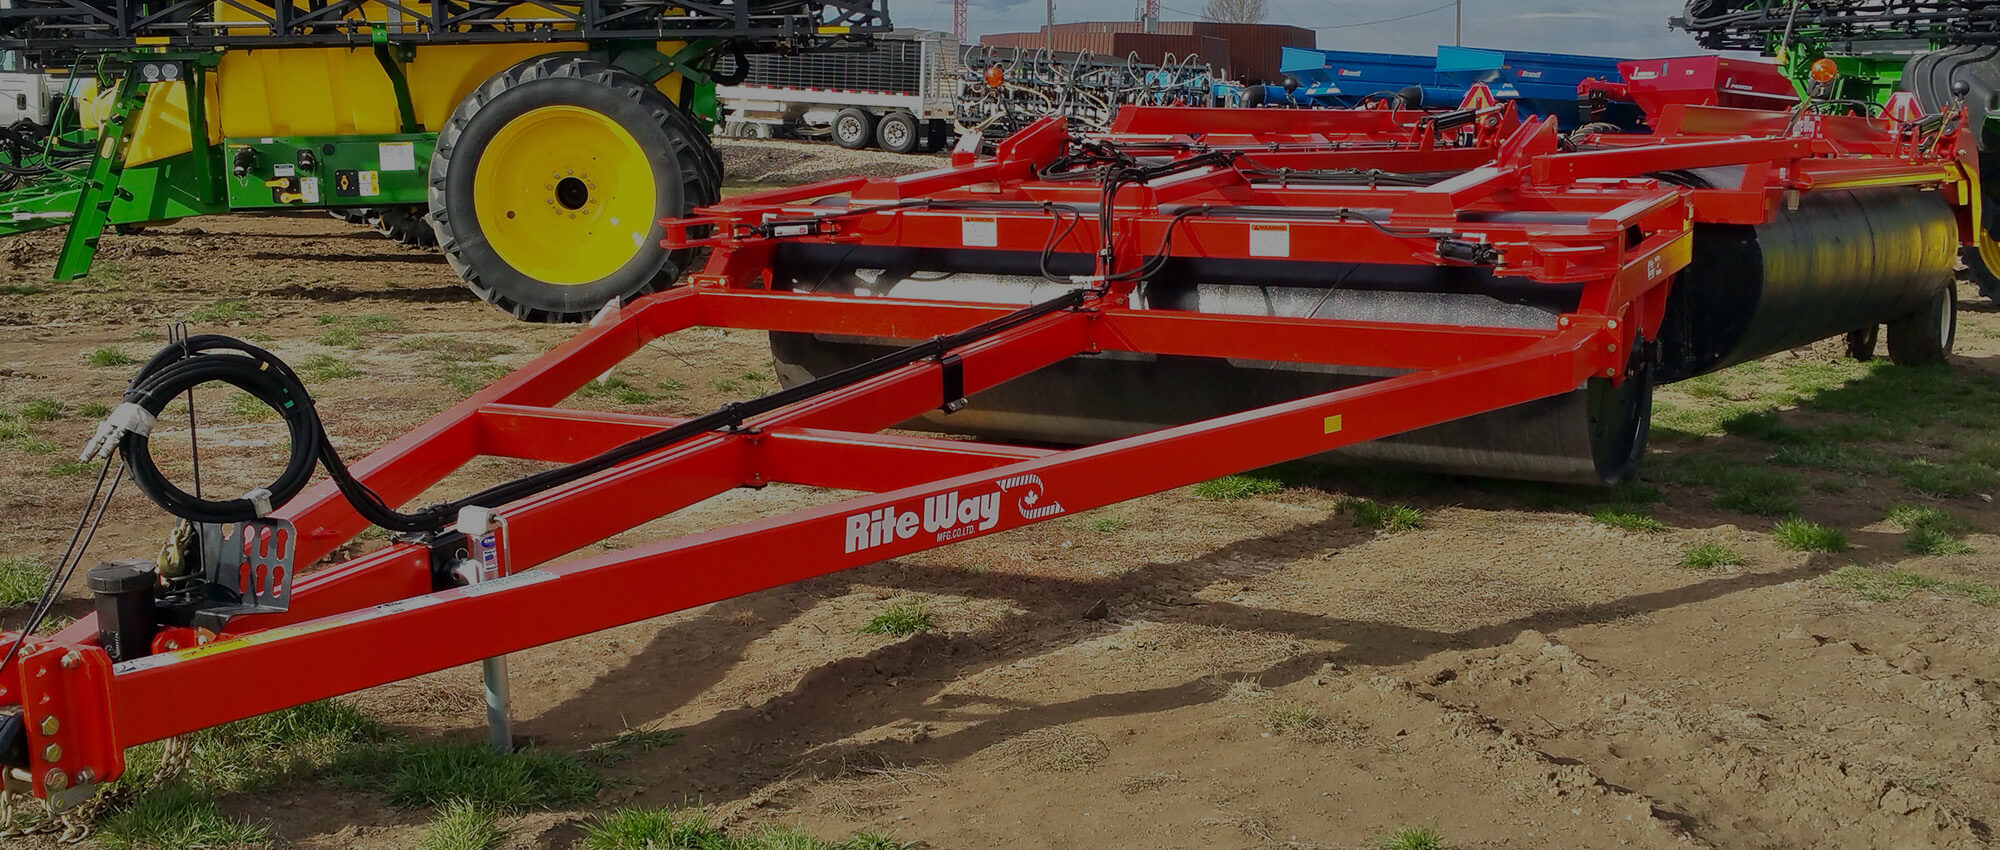 Rite Way Land Rollers Frieling Equipment